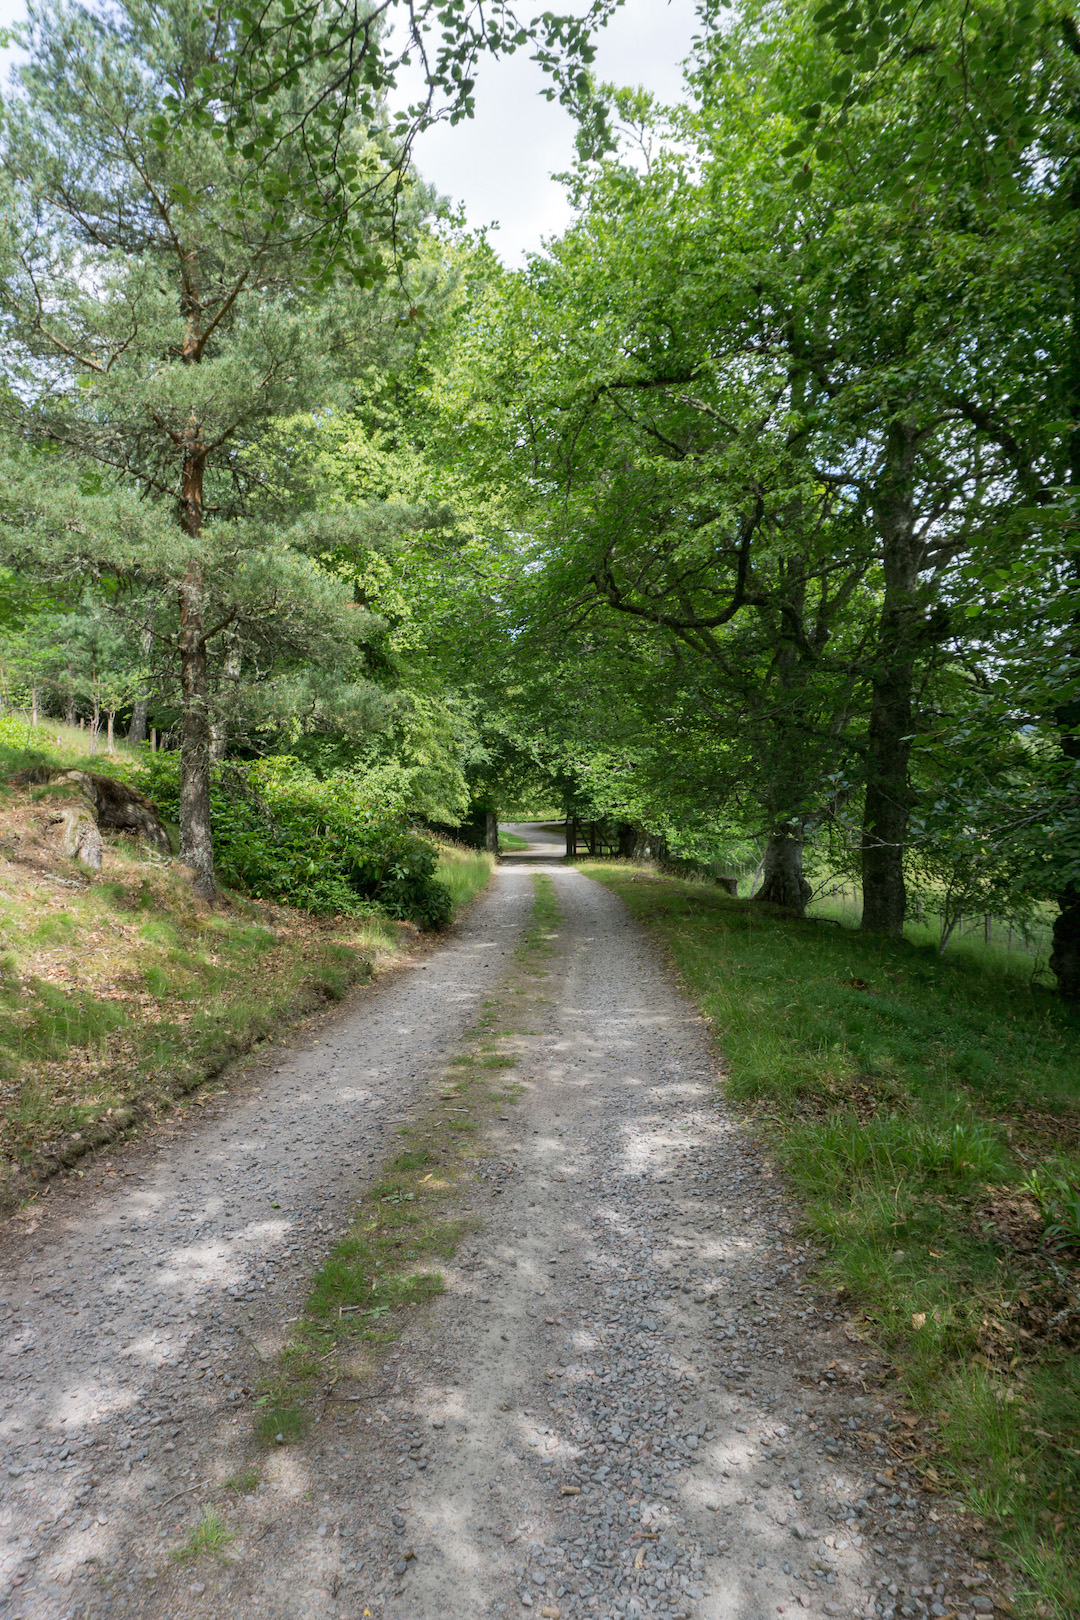 Road to Tomatin House